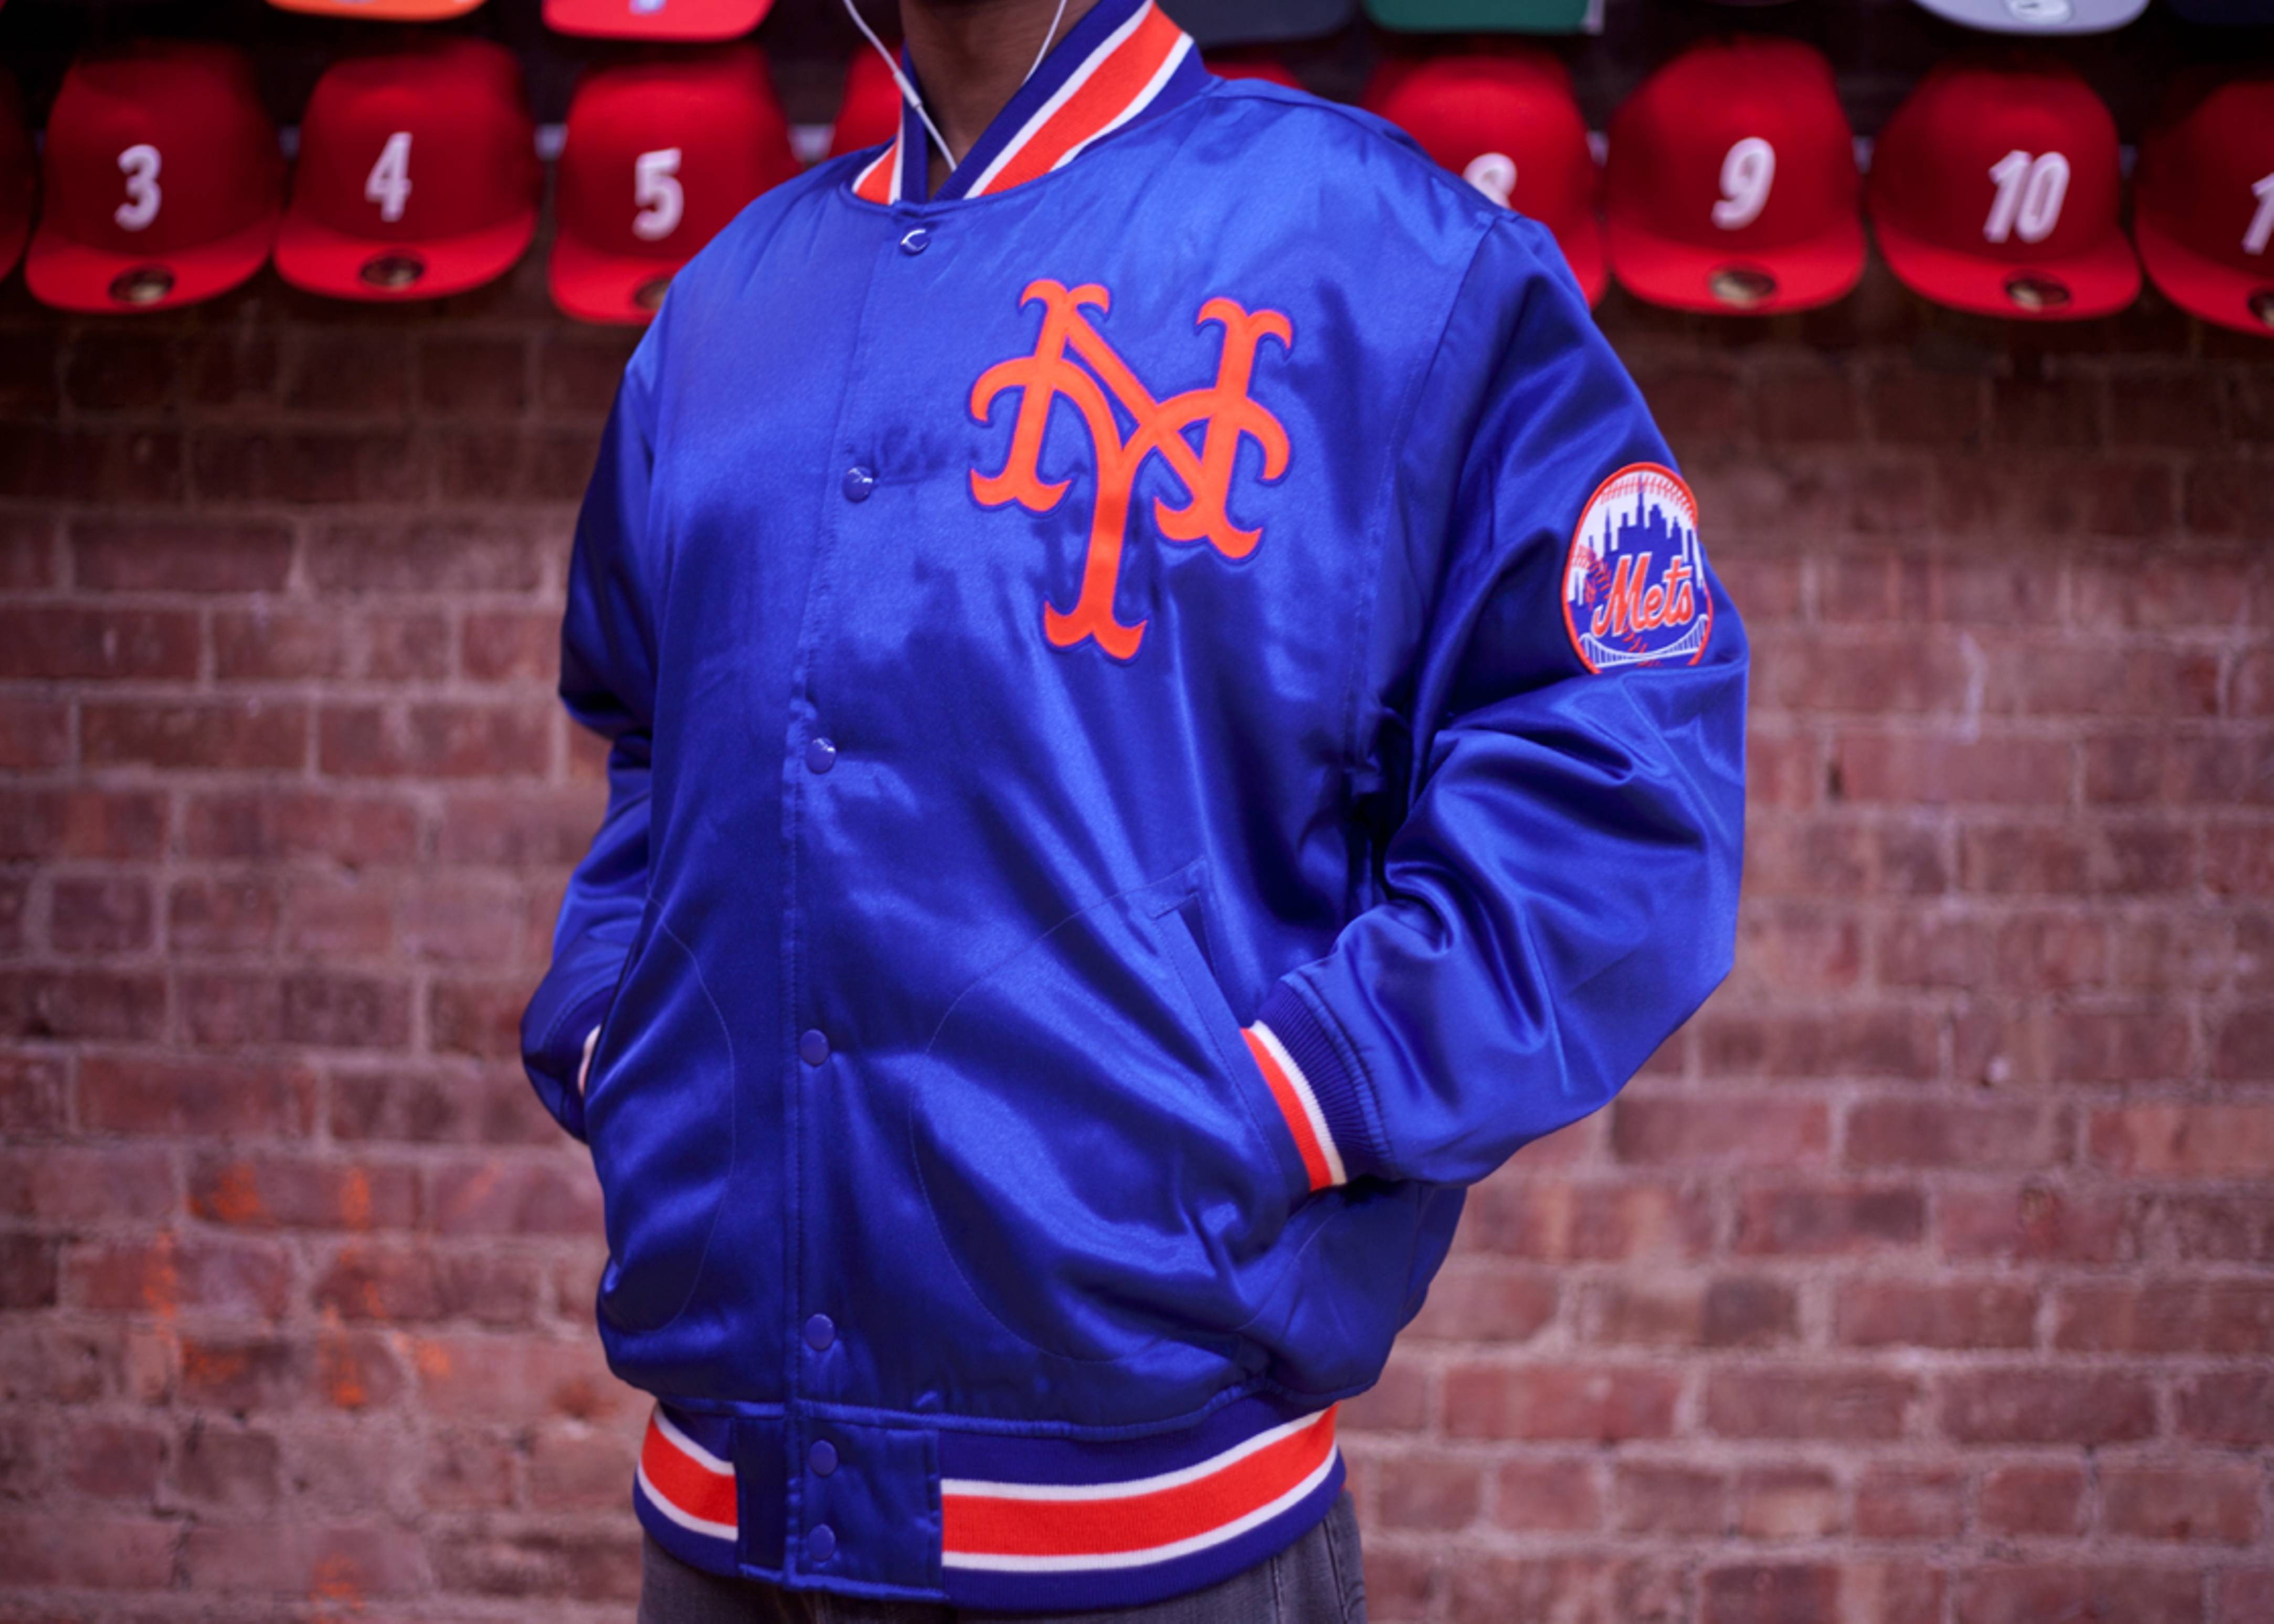 reputable site 89fae 5b971 New York Mets Mlb Satin Jacket - Mitchell & Ness - 19 - blue ...